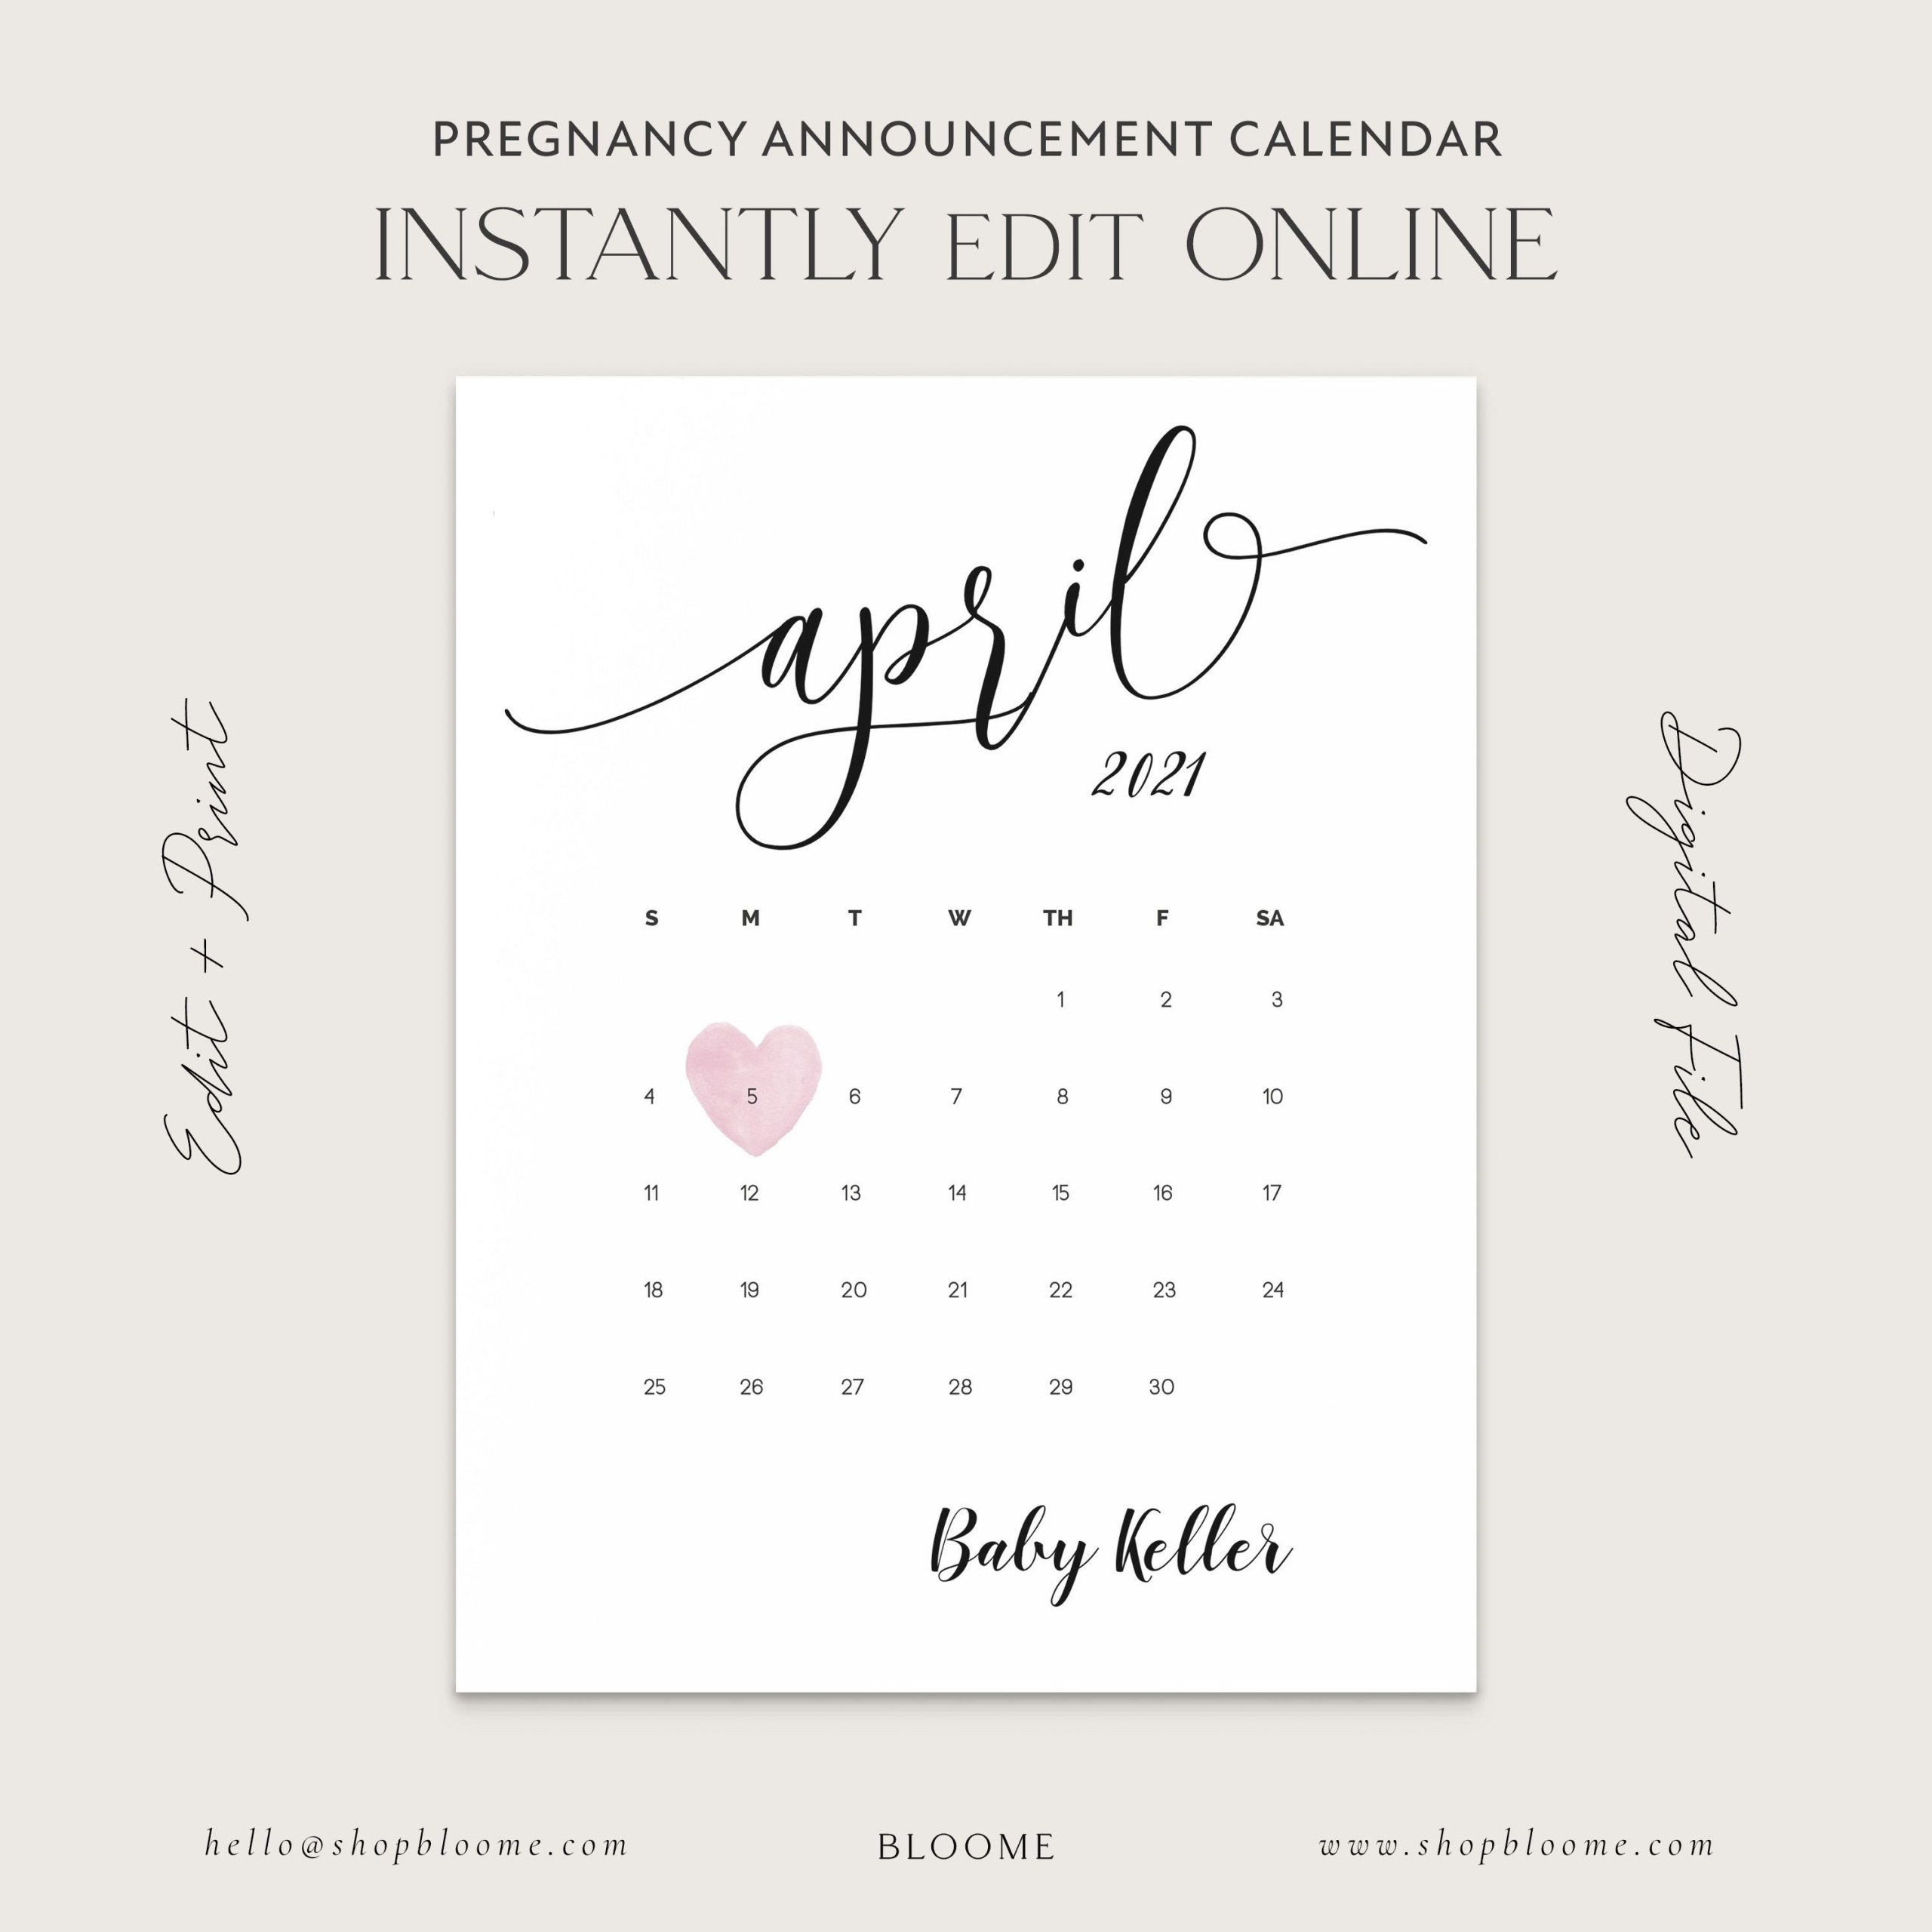 Pin On Digital Social Media Pregnancy Announcements